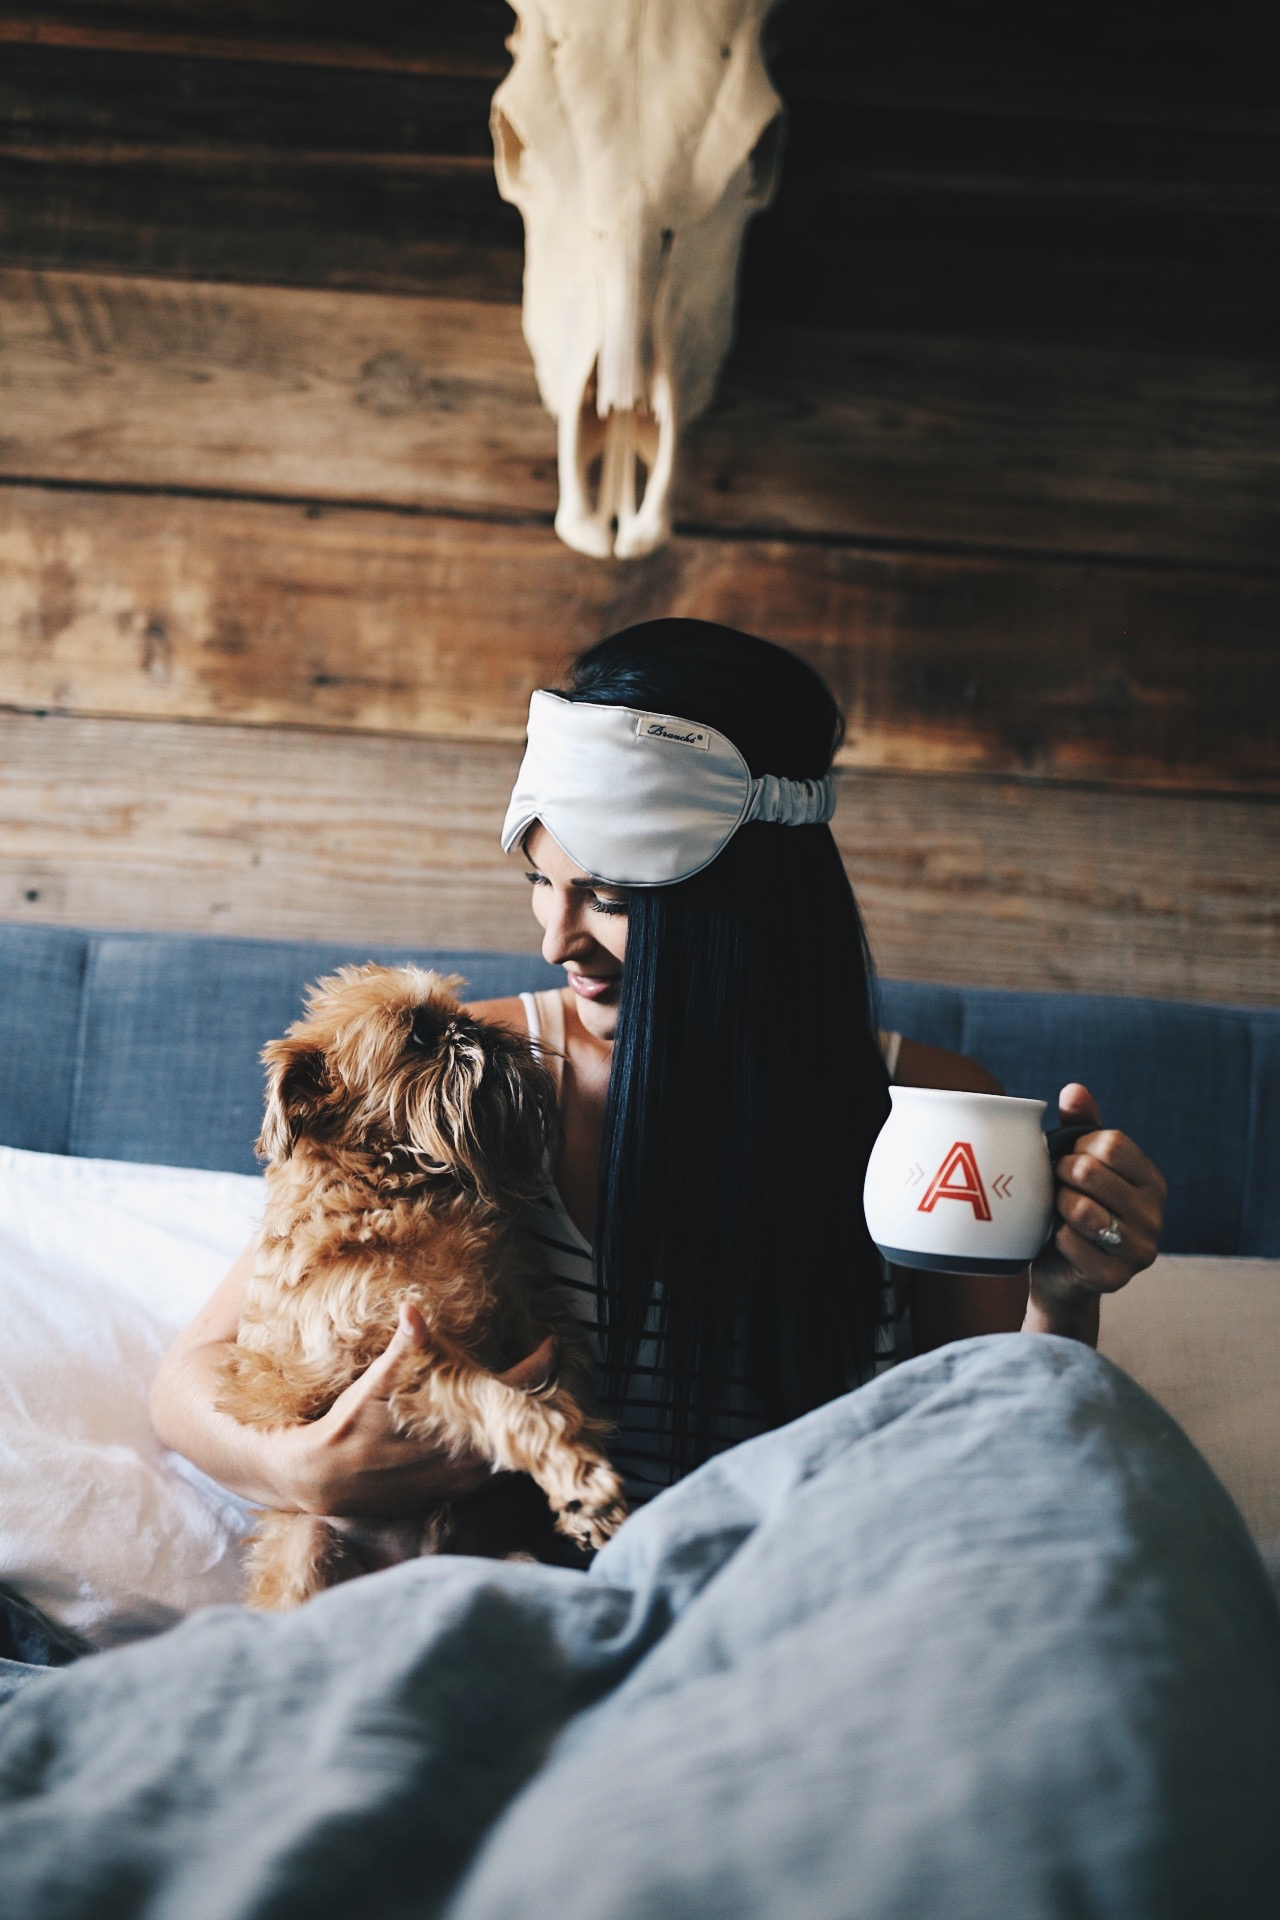 DTKAustin is sharing a few easy tips on how to finally get a good night's sleep without having to take sleeping  medicine. Time to get the best sleep of your life! | how to get a good nights sleep | restful sleep tips and tricks | how to sleep well at night || Dressed to Kill